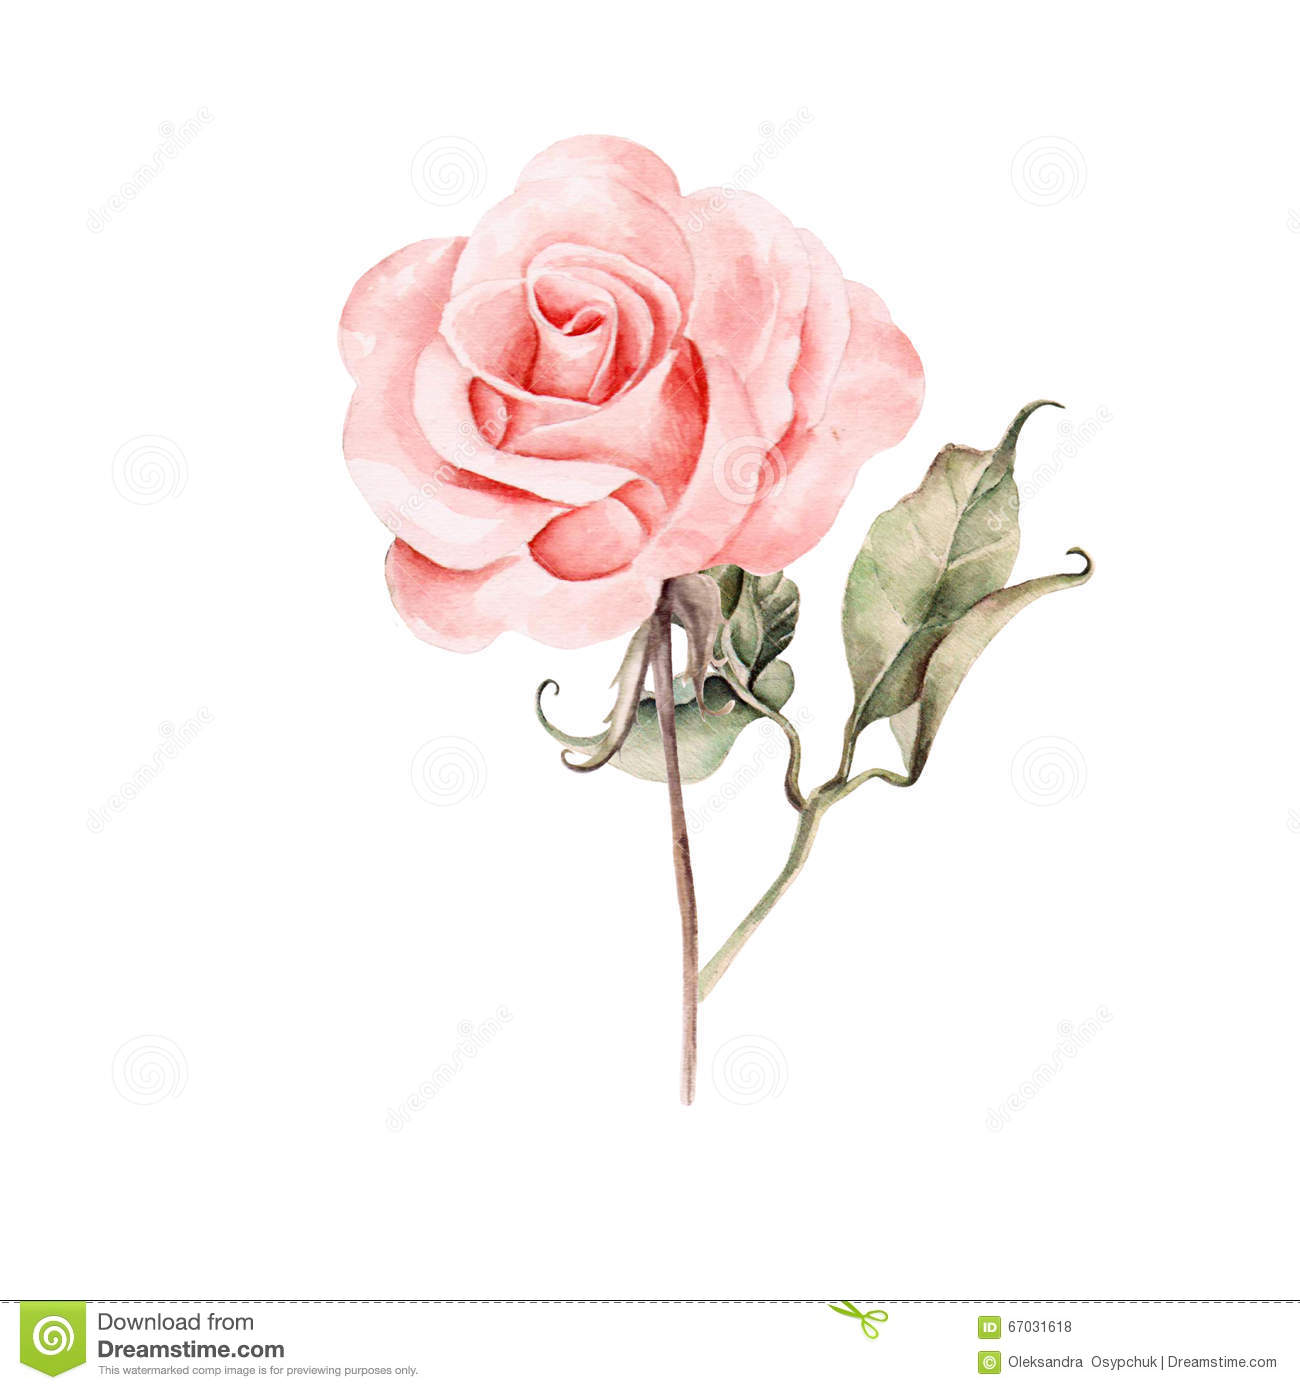 watercolor realistic rose hand drawing stock illustration image